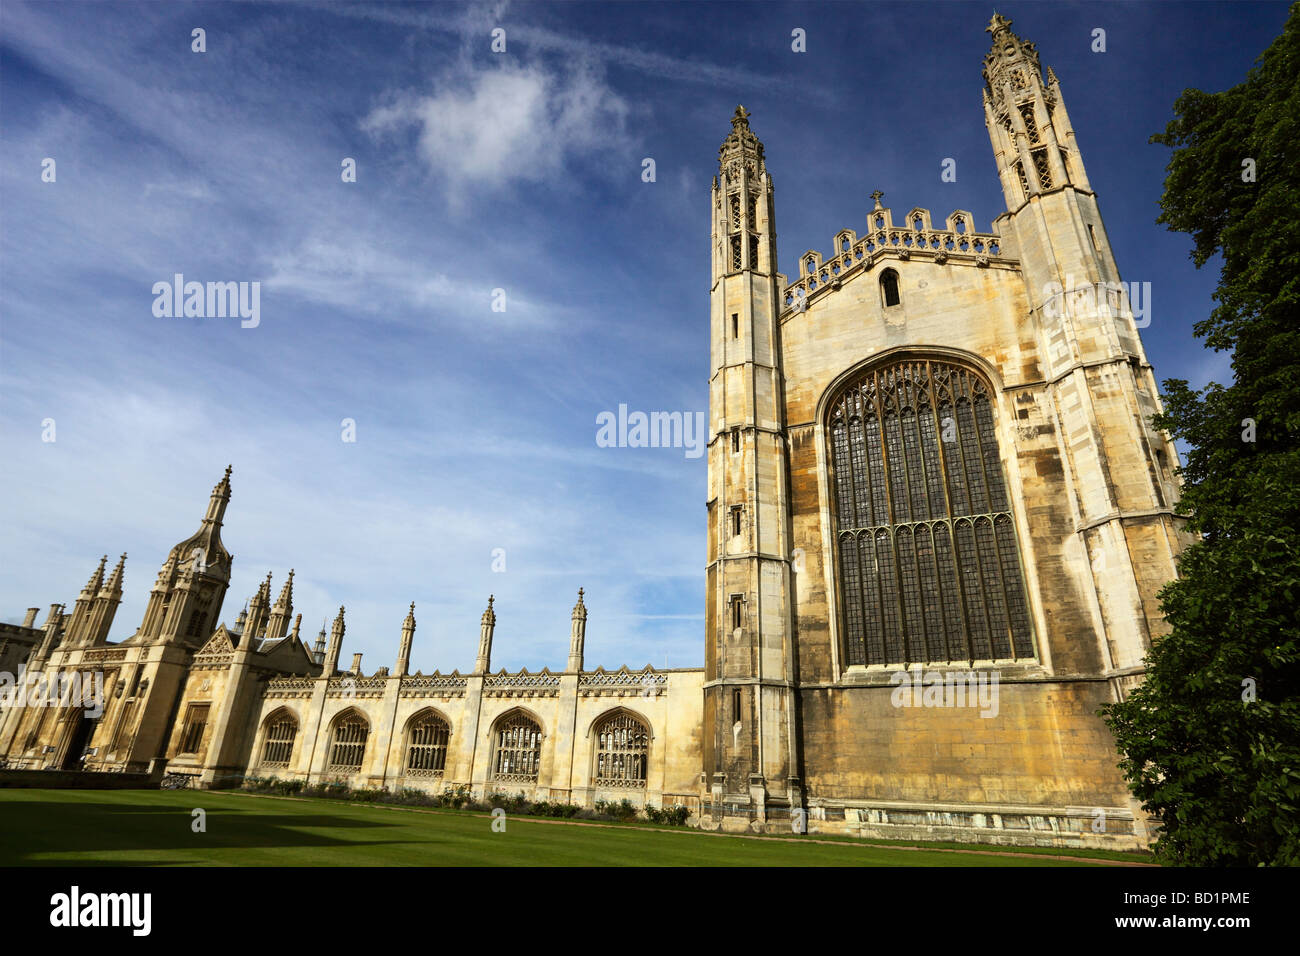 Entrance and Chapel of King's College Cambridge 2 - Stock Image